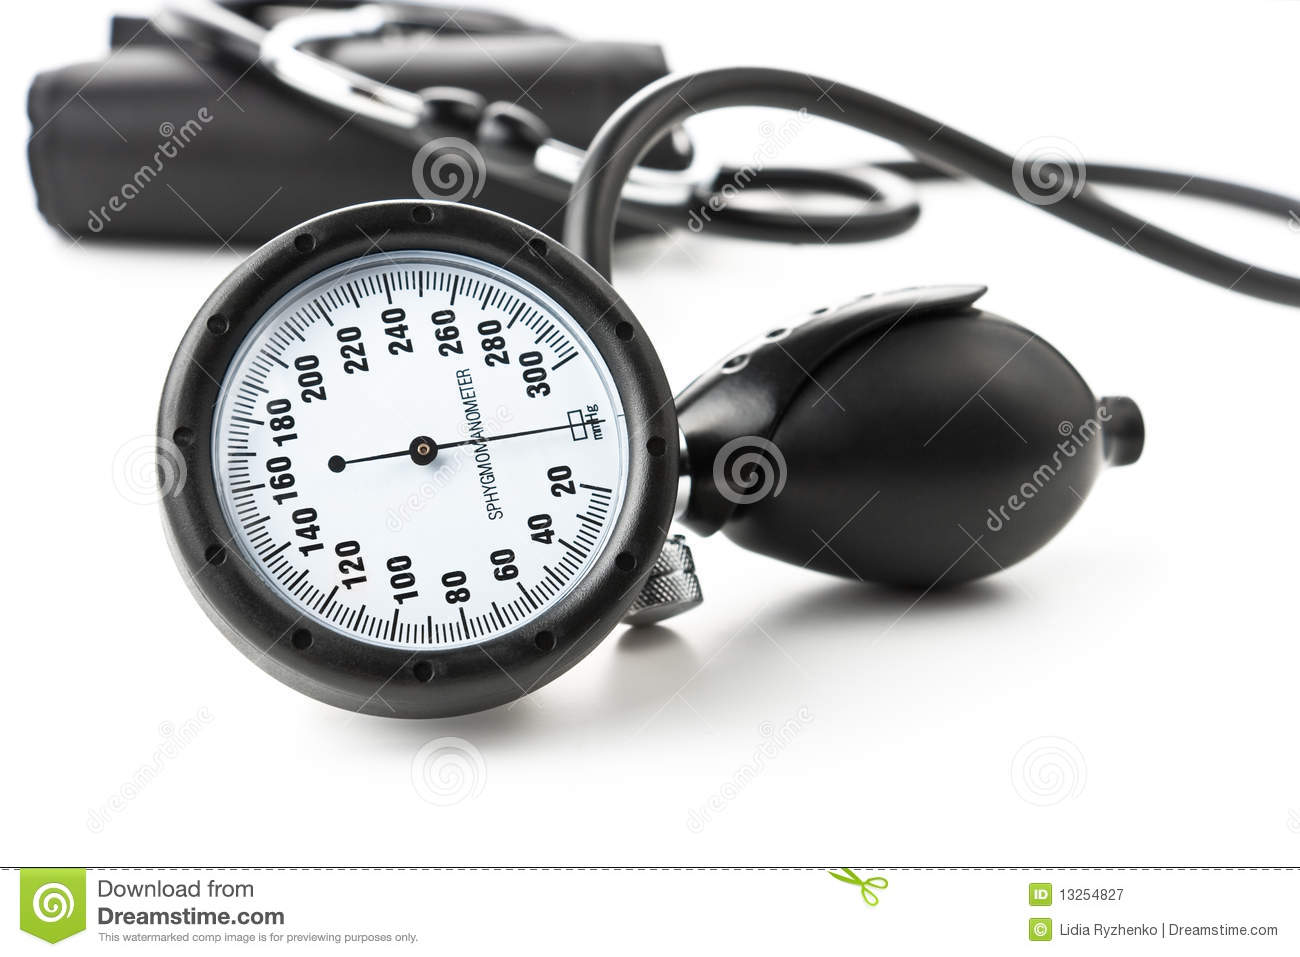 Pressure Measuring Instruments : Instrument for blood pressure measurement stock image